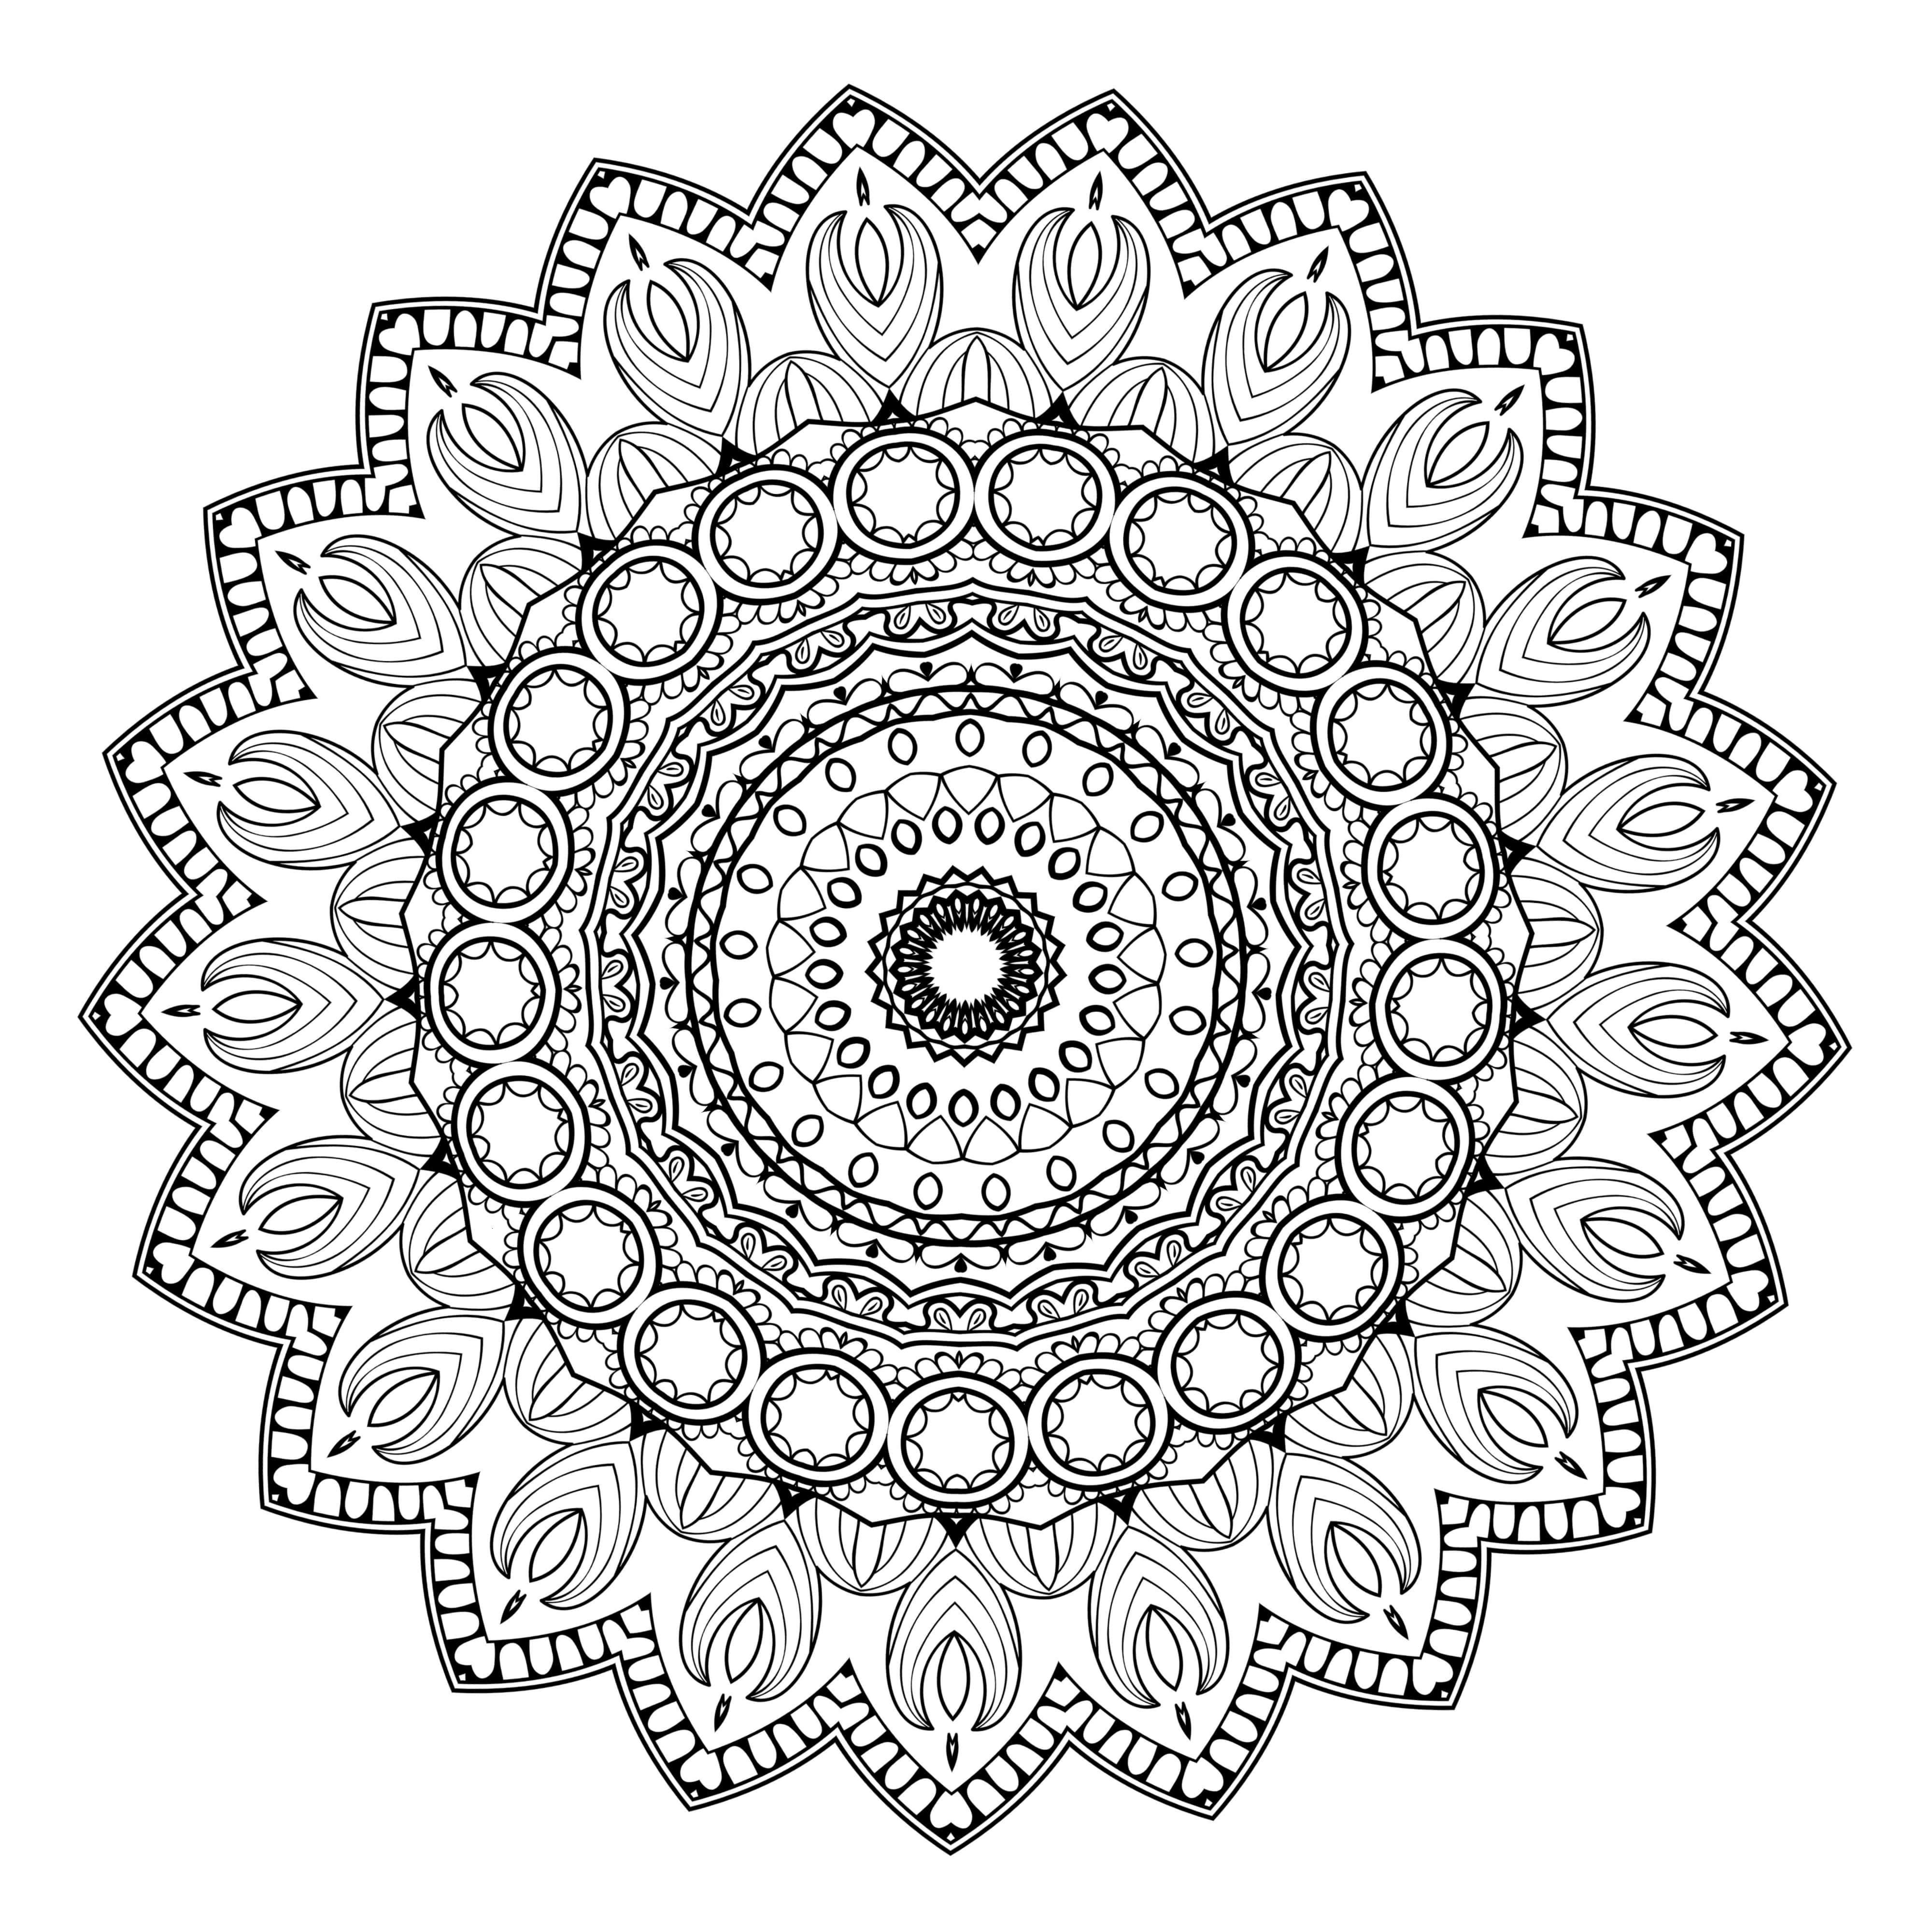 Lifestyle And Productivity The Maven Circle Printable Coloring Pages Free Coloring Pages Mandala Coloring Books